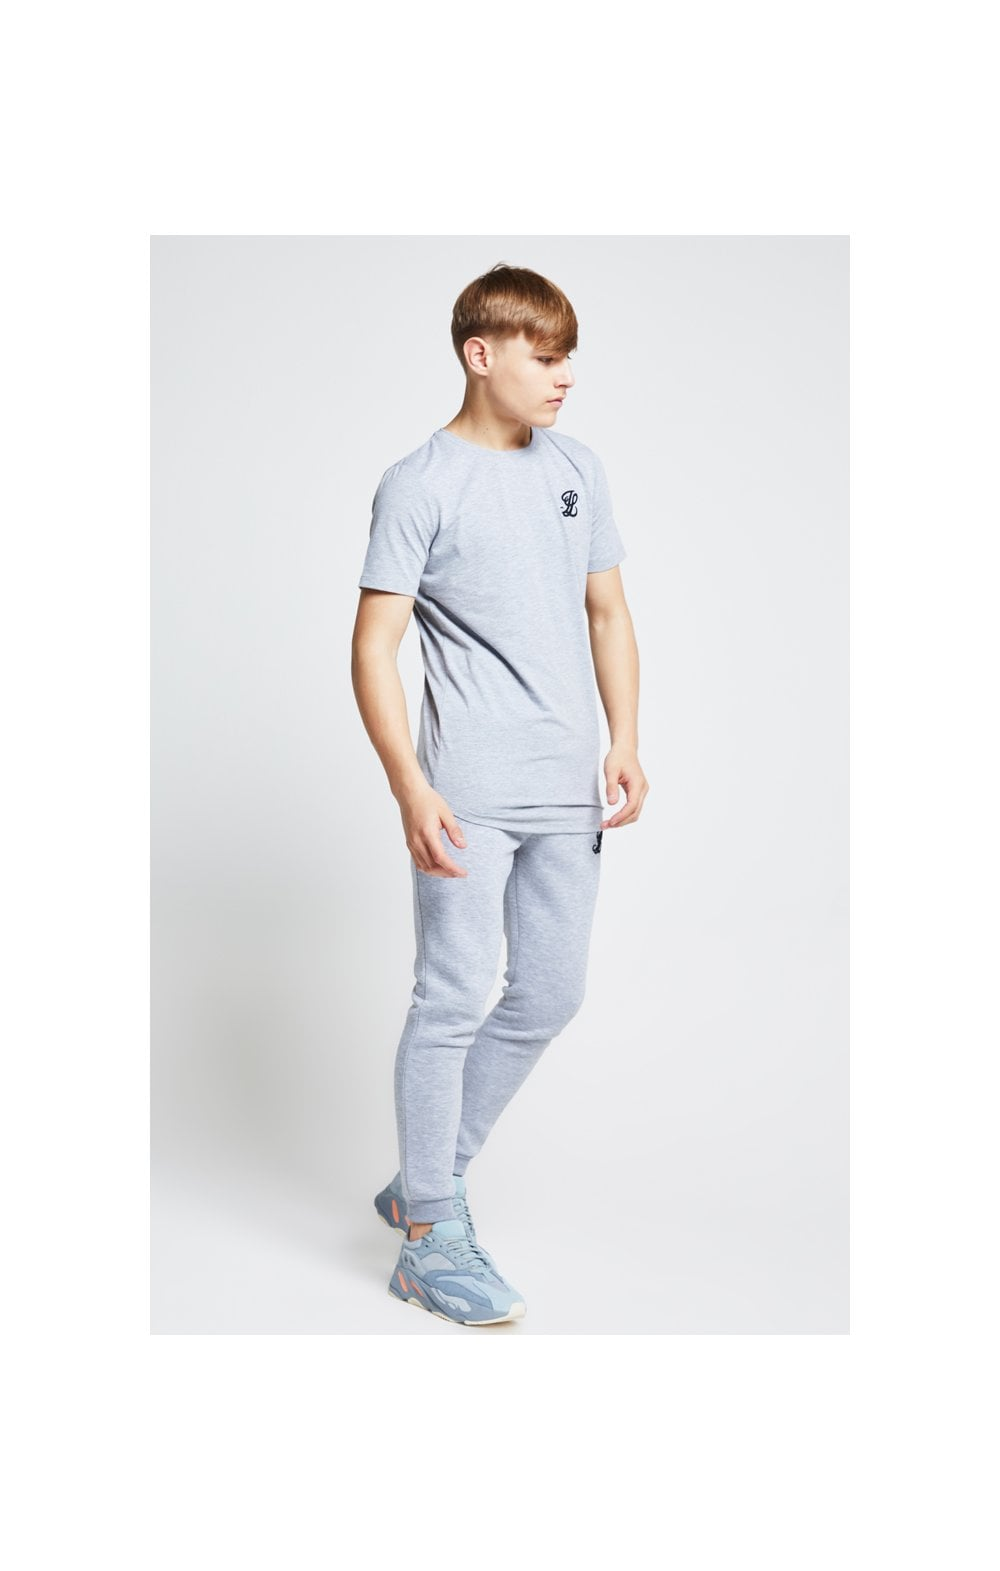 Illusive London Tee – Grey Marl (5)